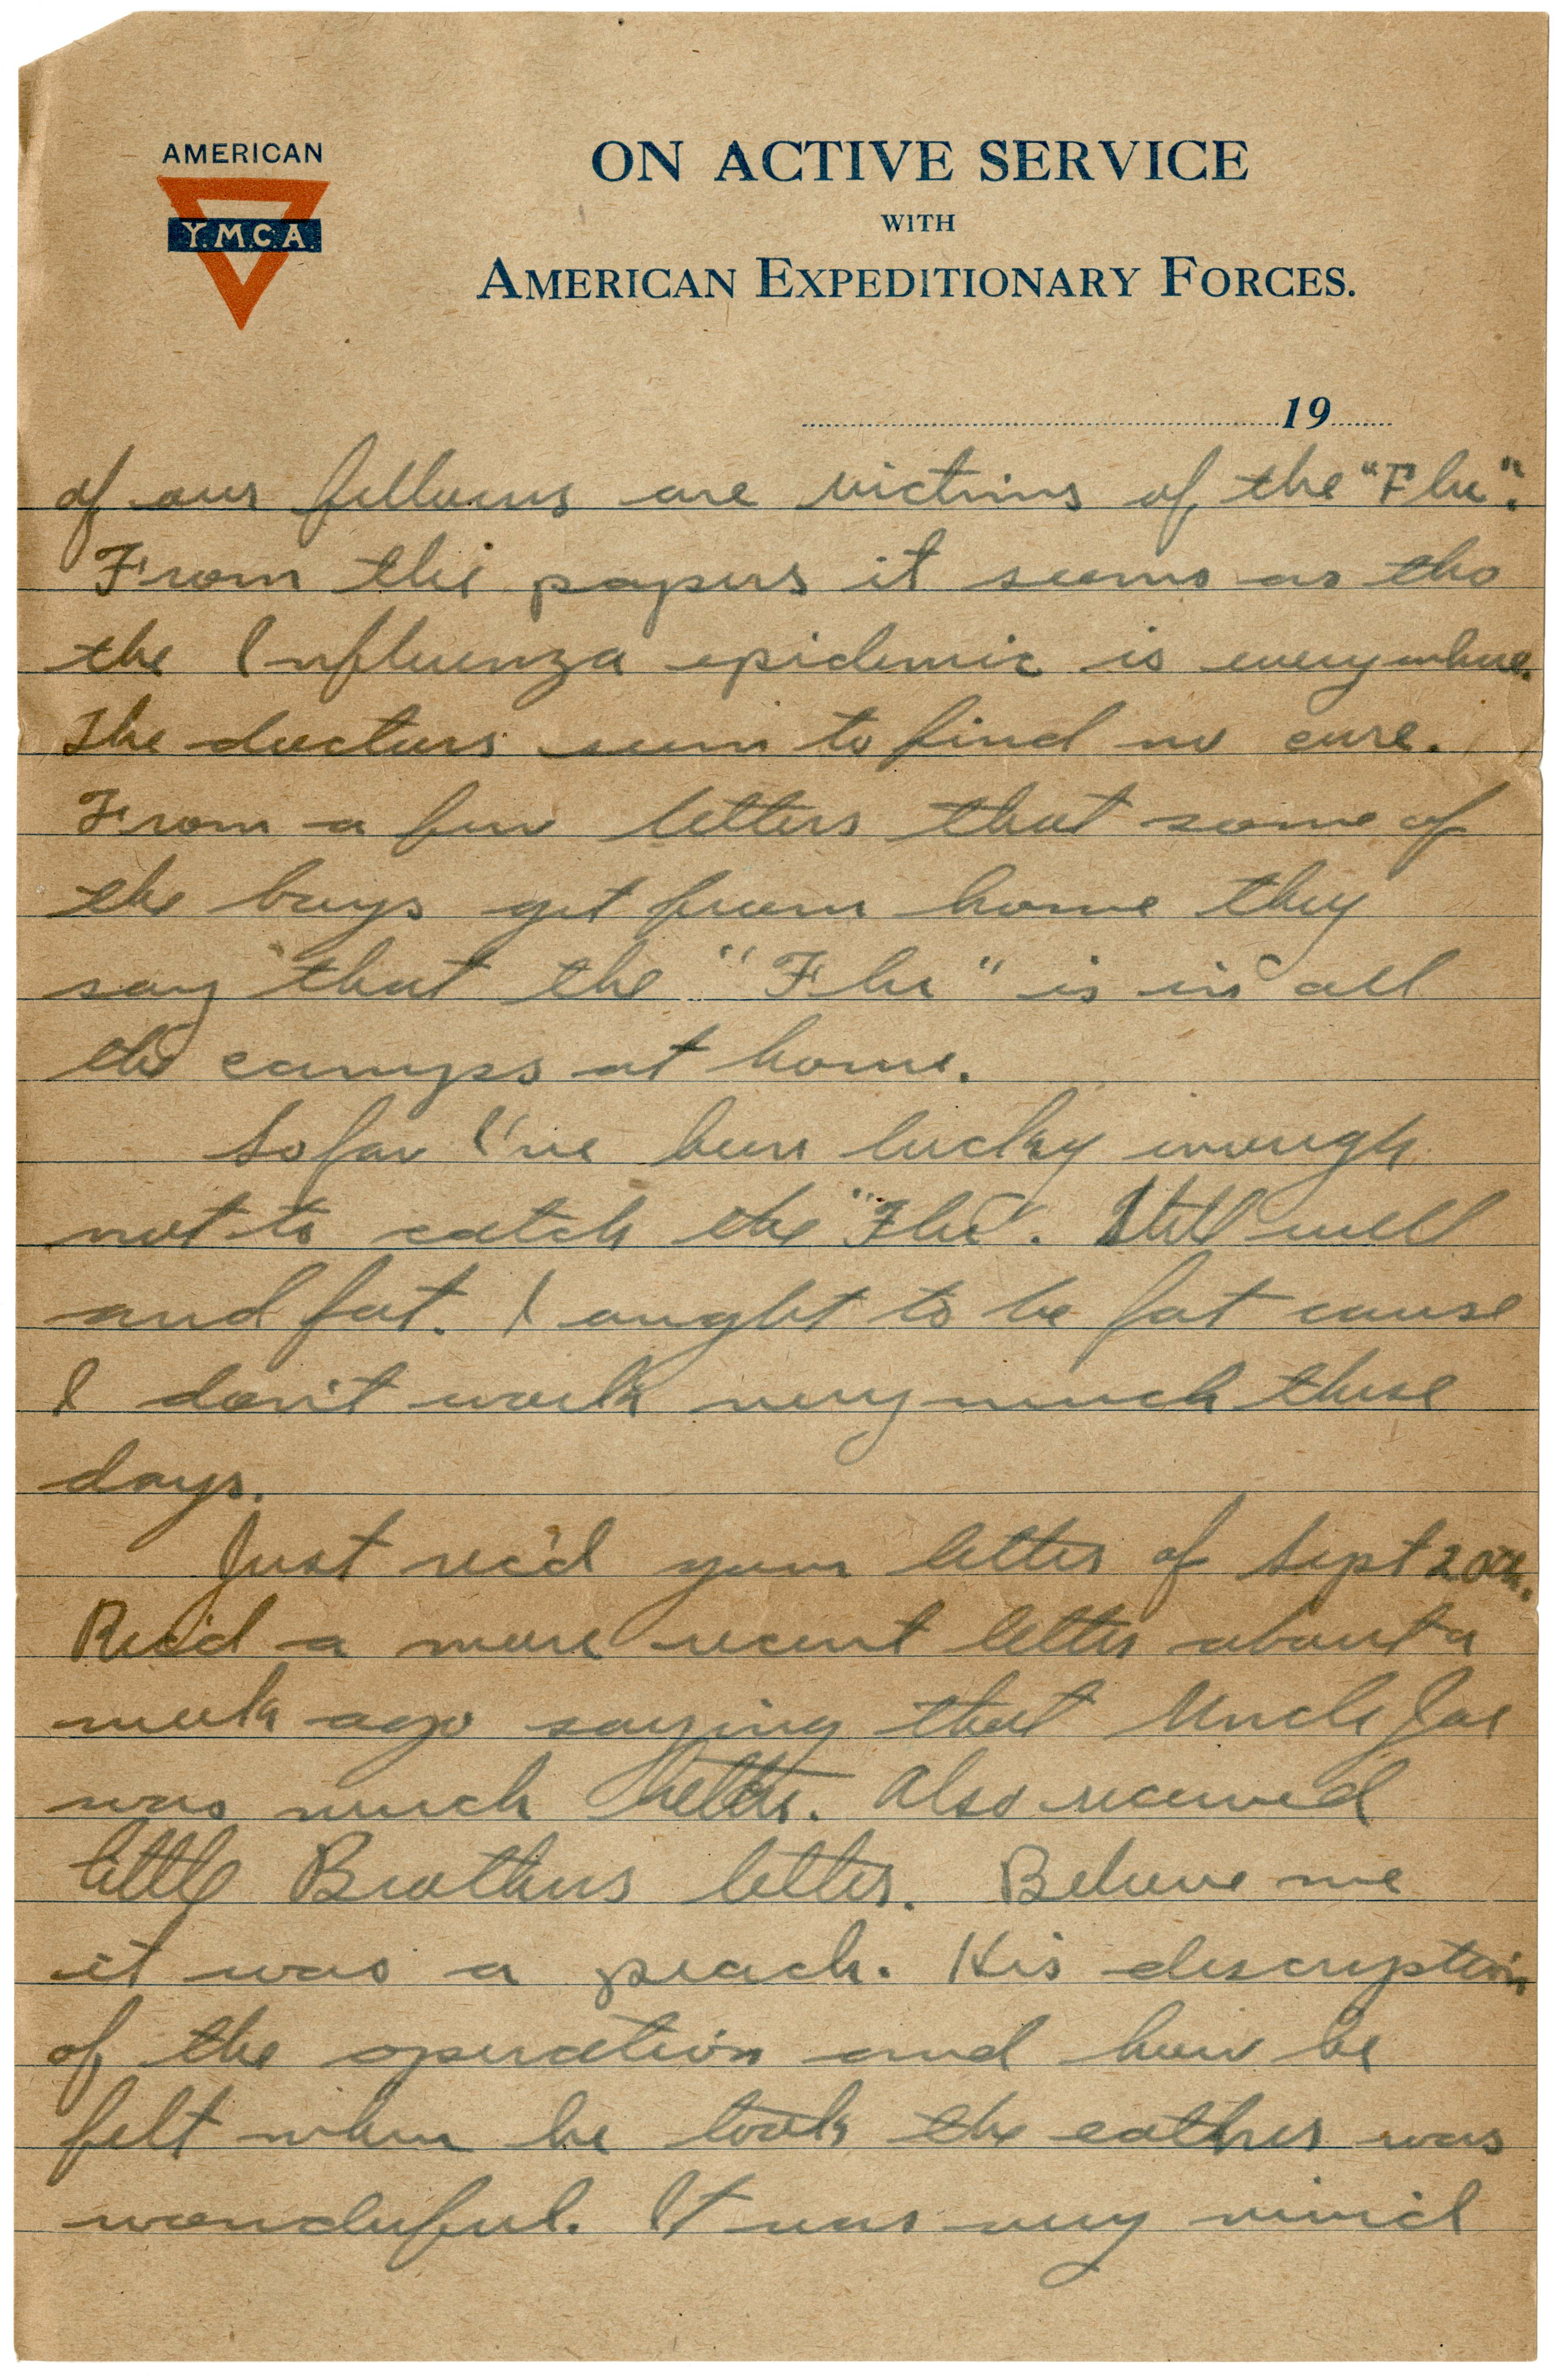 Page of a handwritten letter from 1918 on YMCA stationery illustrating how the Influenza pandemic was perceived by soldiers during World War One